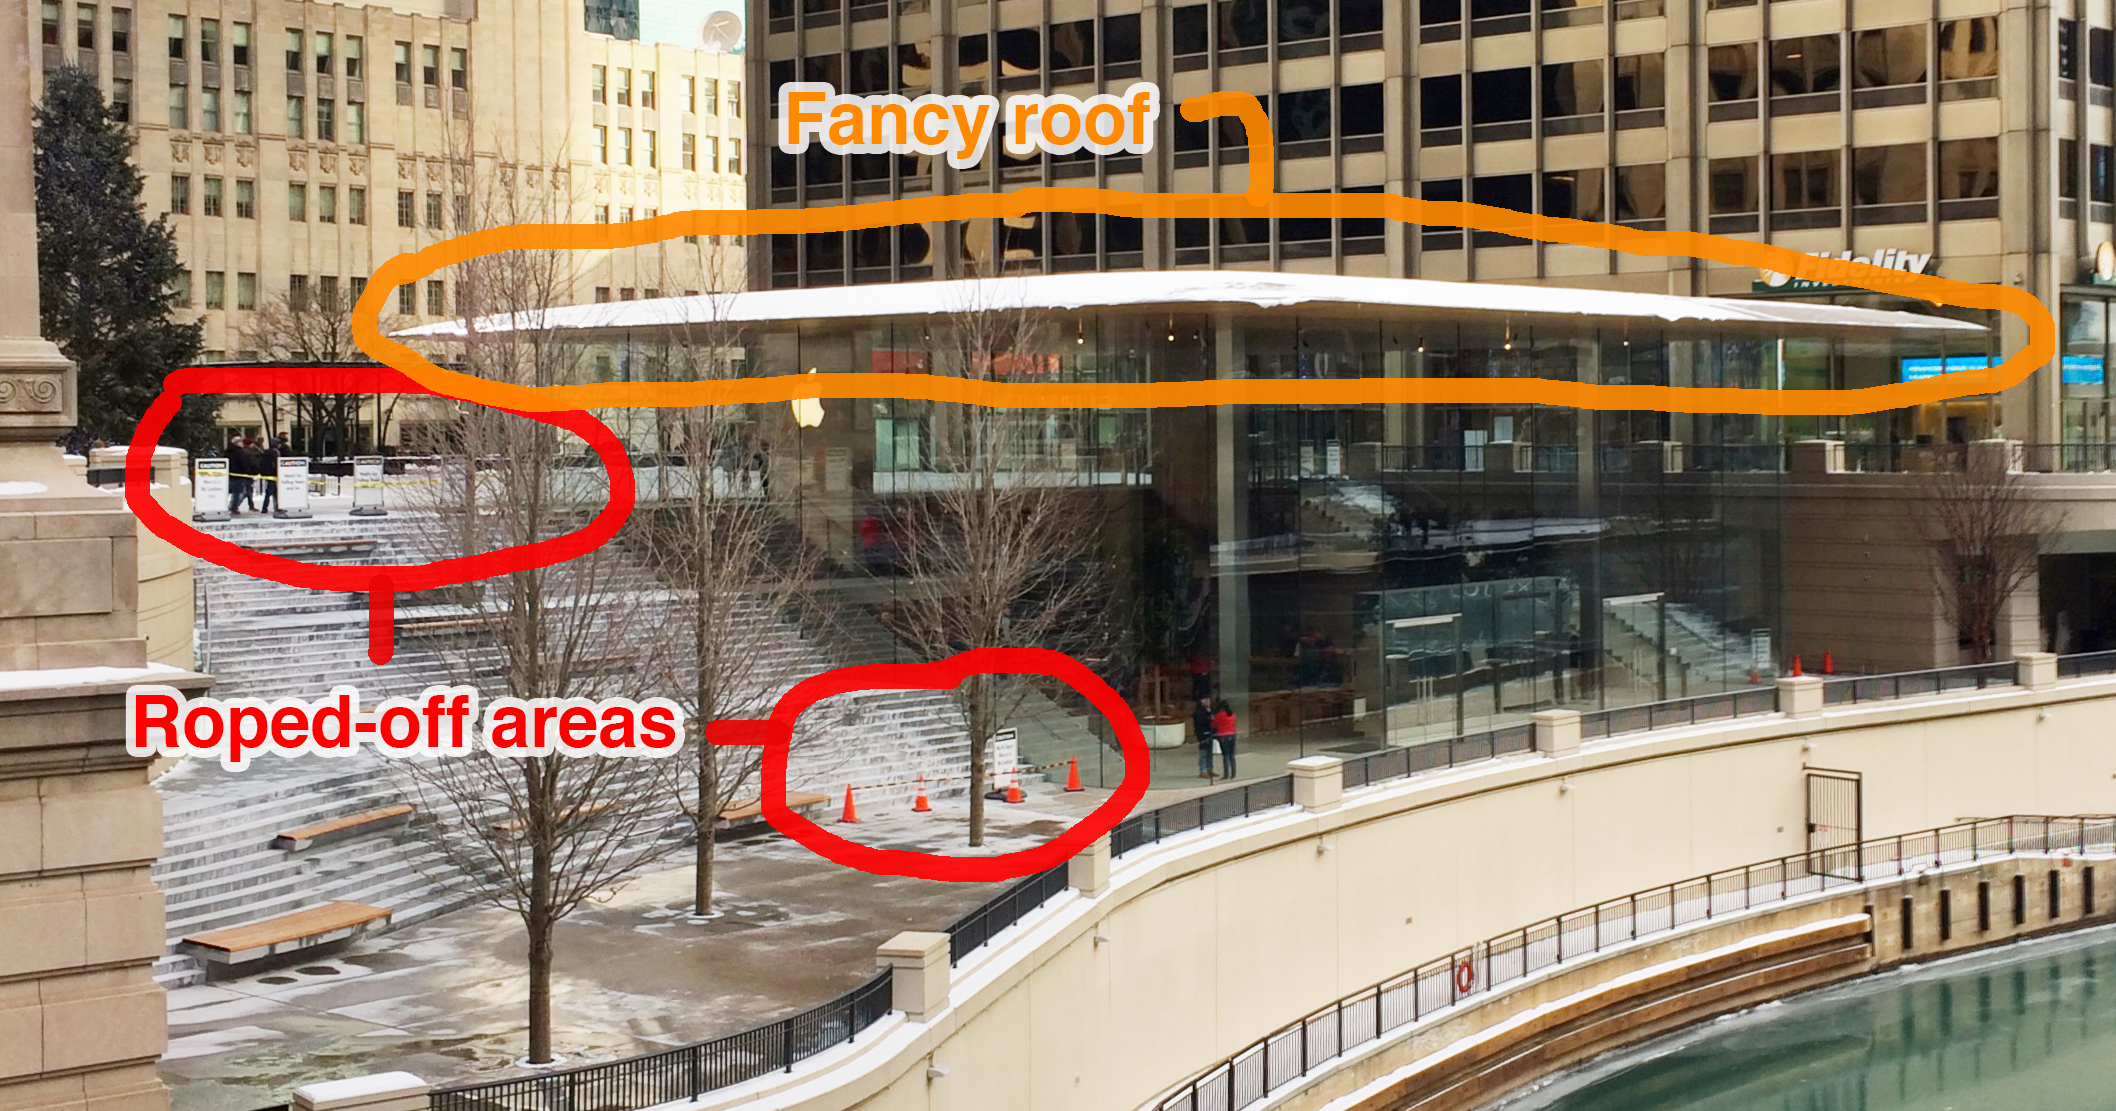 Chicago Apple store's snow, ice hazards call for 'fine-tuning'